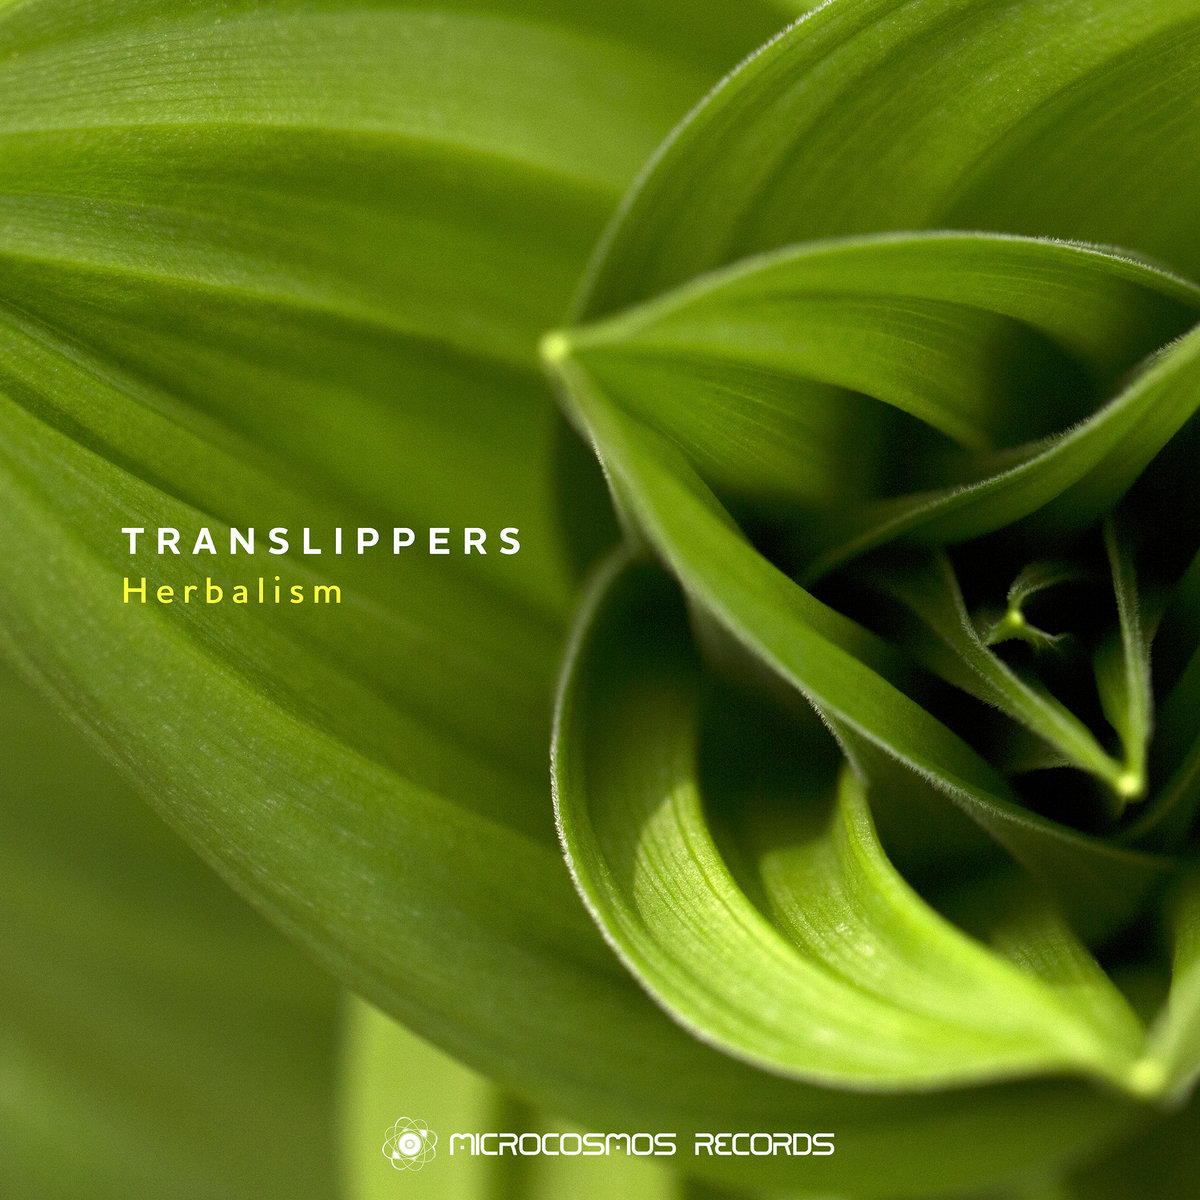 Translippers - Arambol Beach (Album Version) @ 'Herbalism' album (ambient, chill-out)